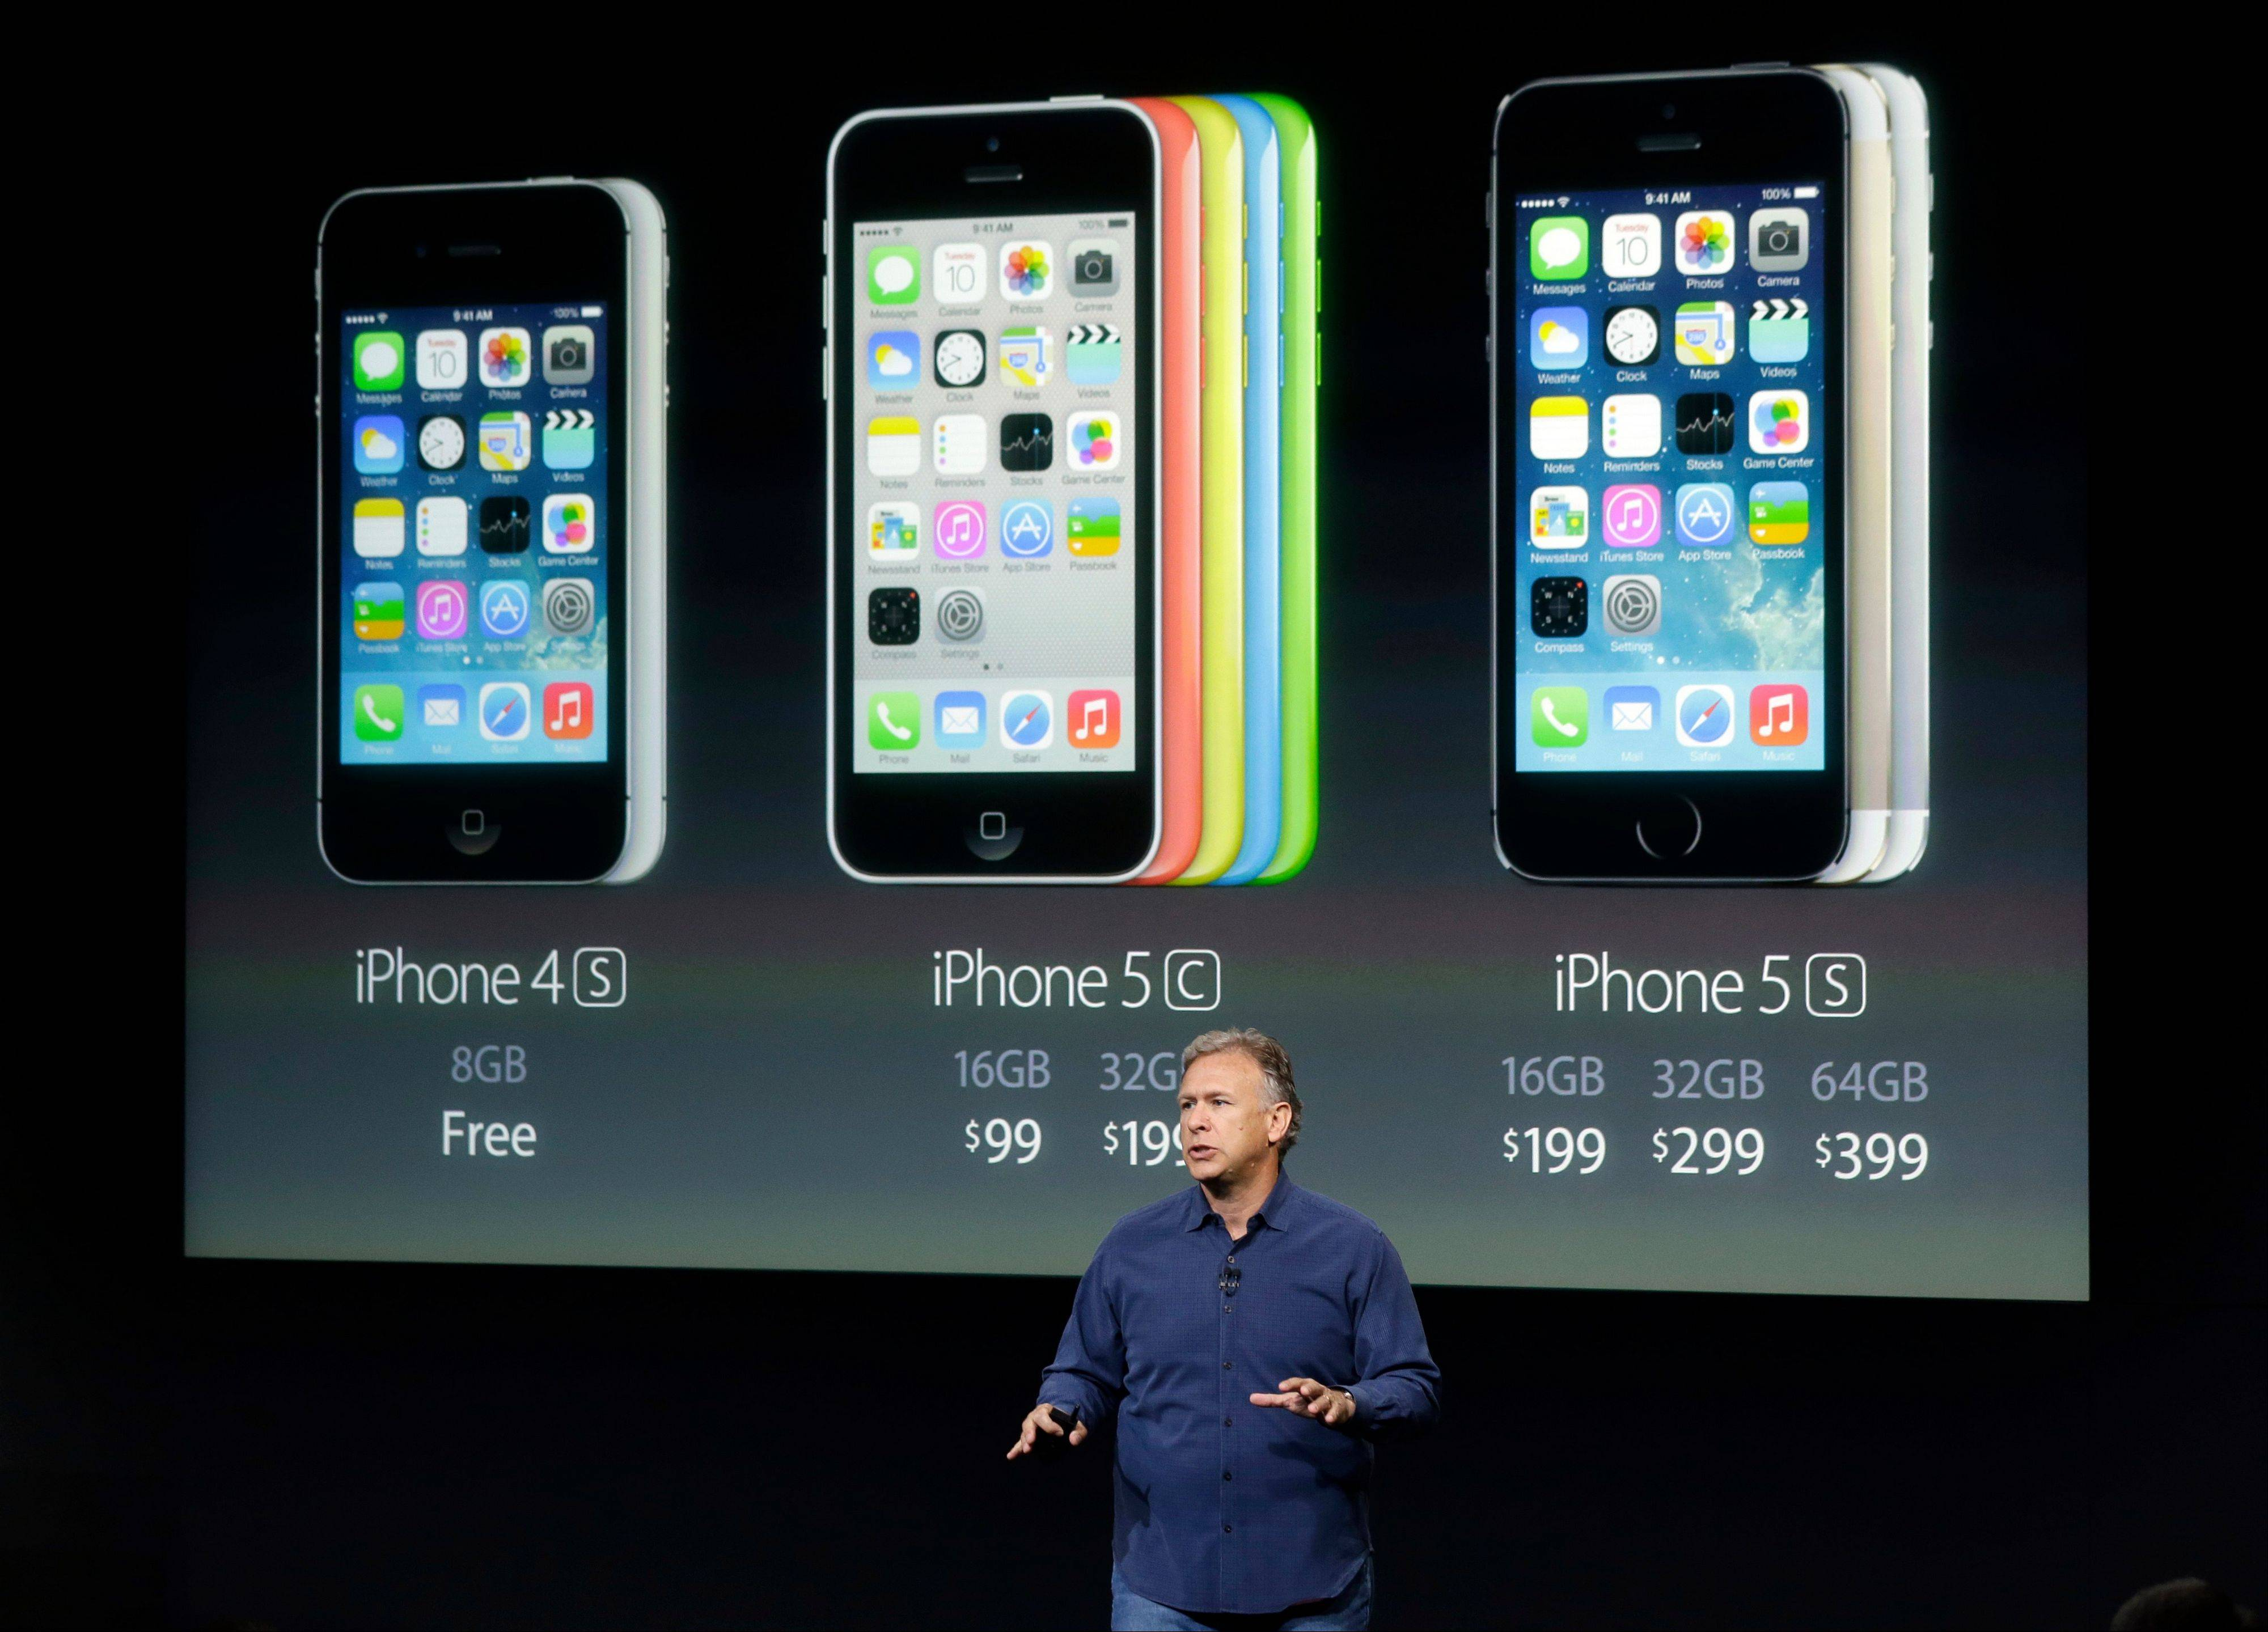 Phil Schiller, Apple's senior vice president of worldwide product marketing, speaks on stage during the introduction of the new iPhone 5c and 5s in Cupertino, Calif., Tuesday, Sept. 10, 2013.